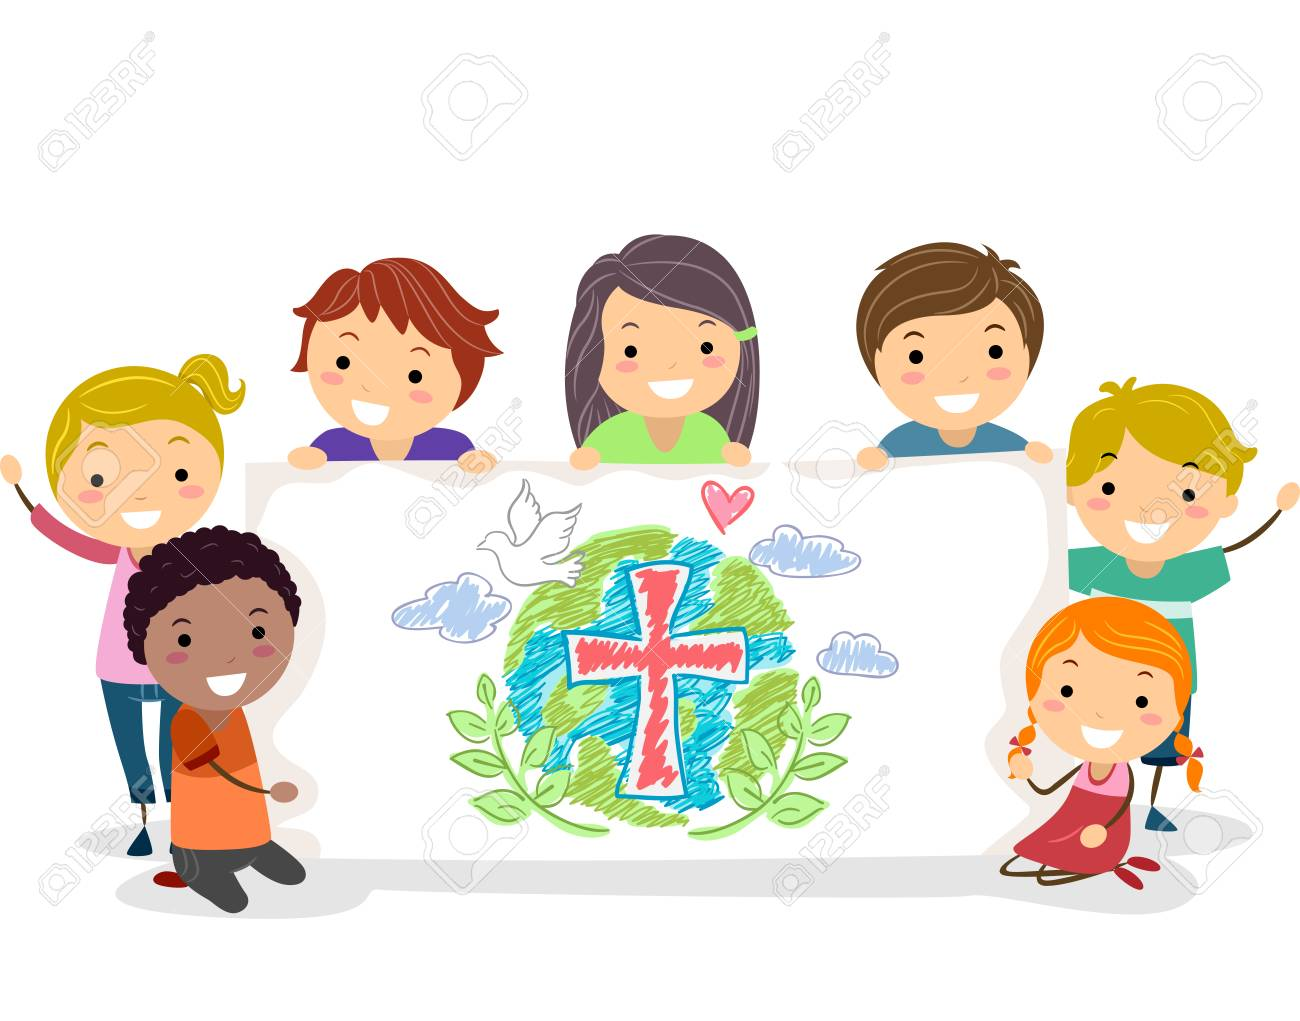 Illustration of Stickman Kids Holding Up a Christian Drawing in a Banner - 88560774